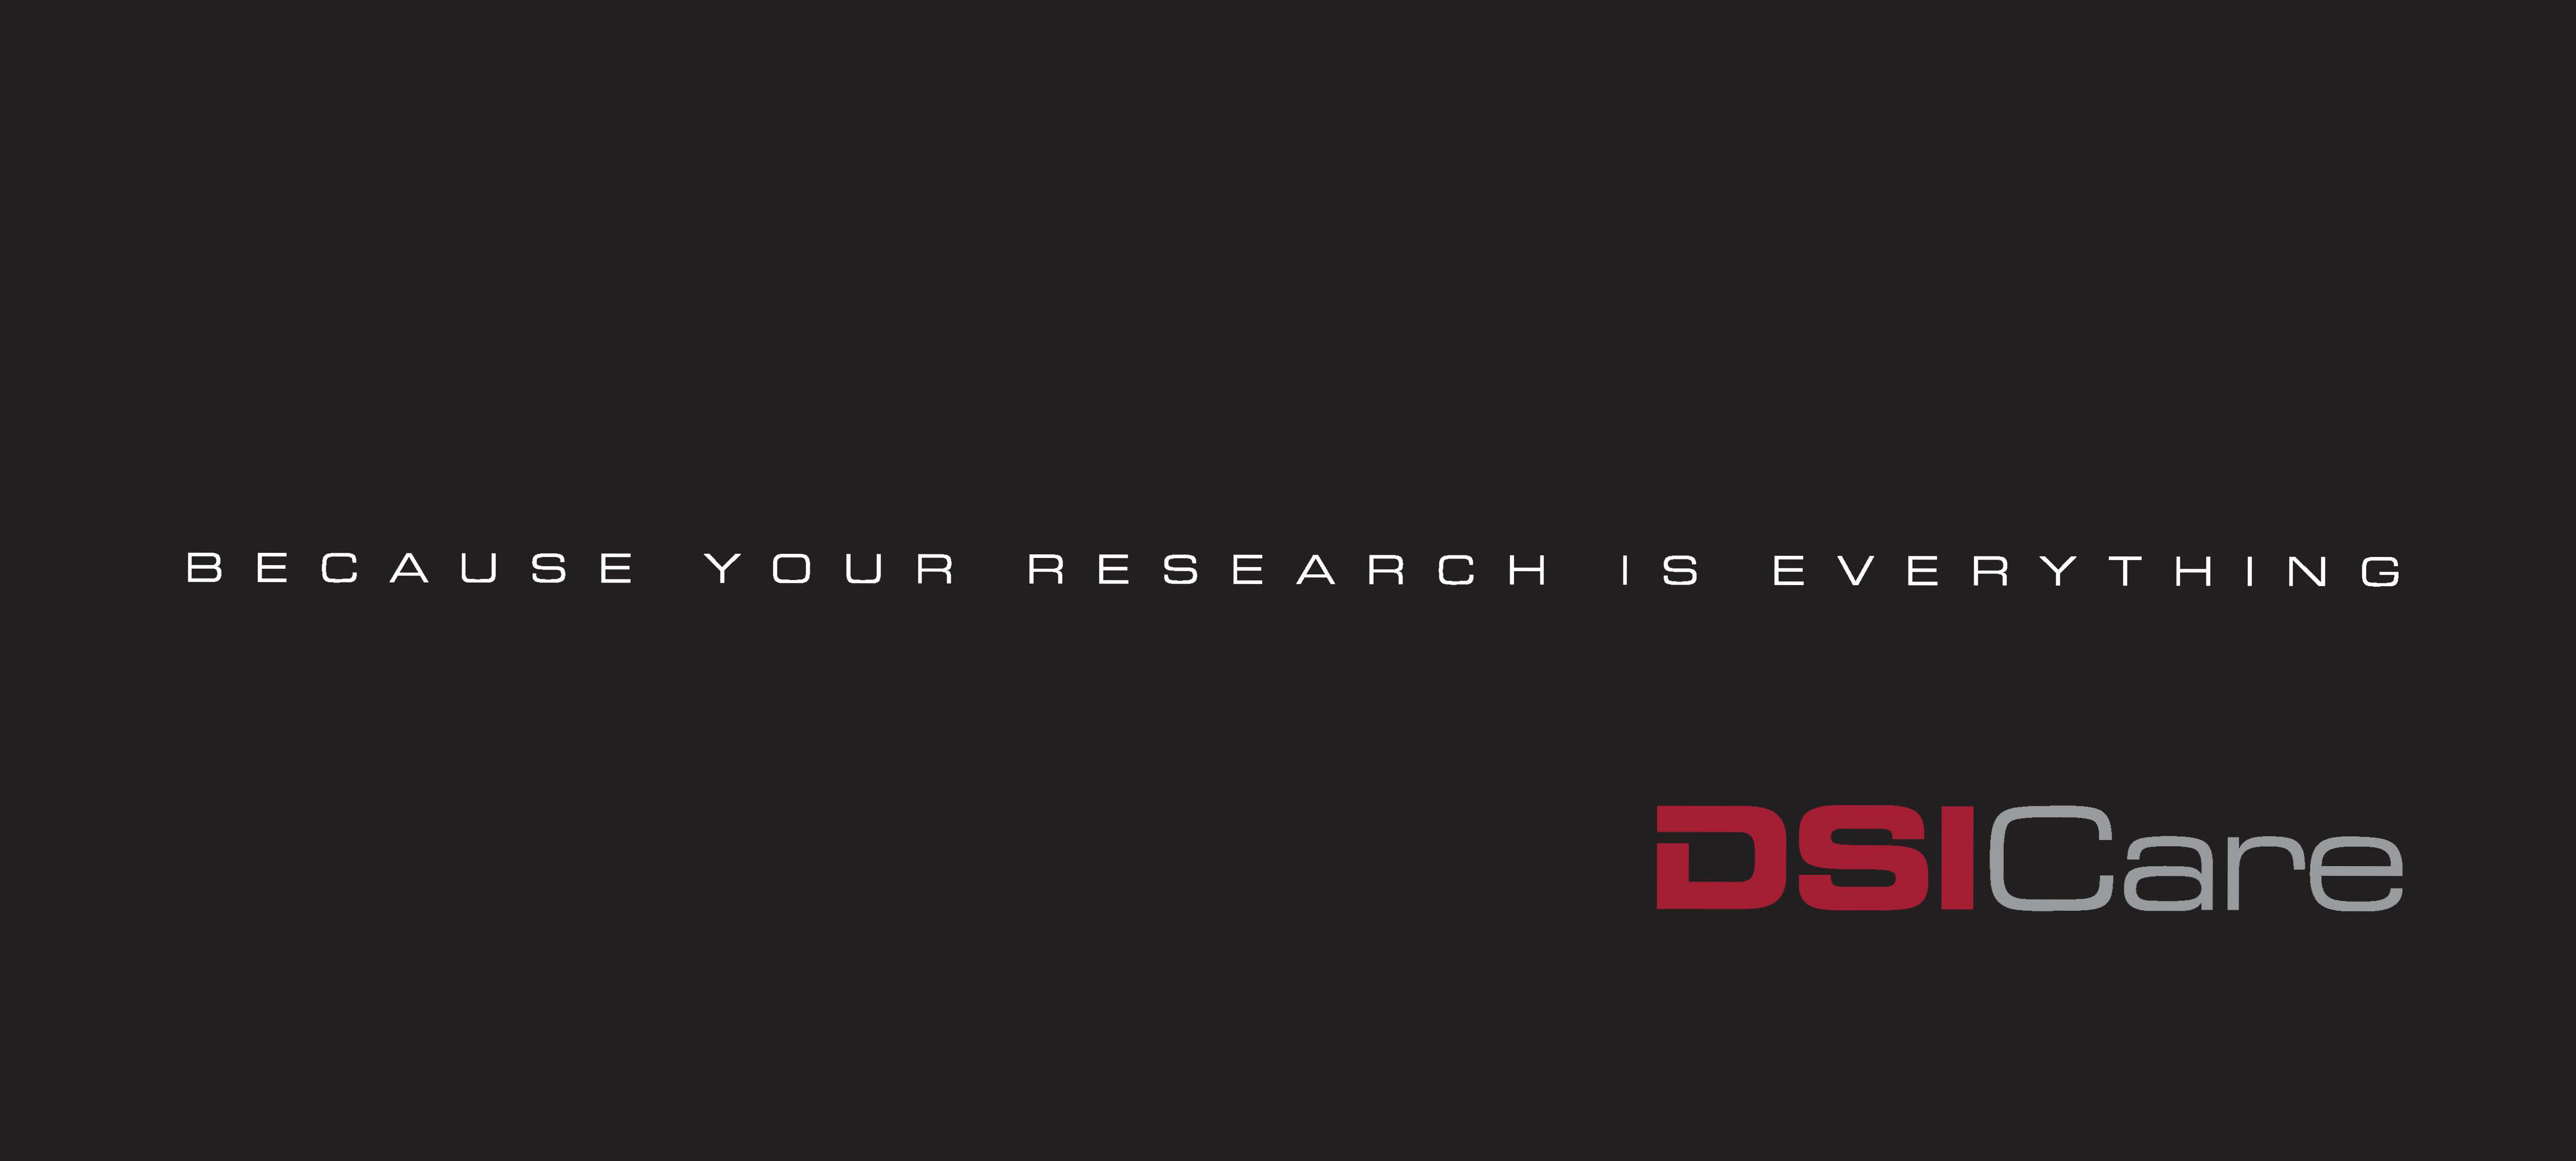 DSICare, DSI, Data Sciences International, DSI Care